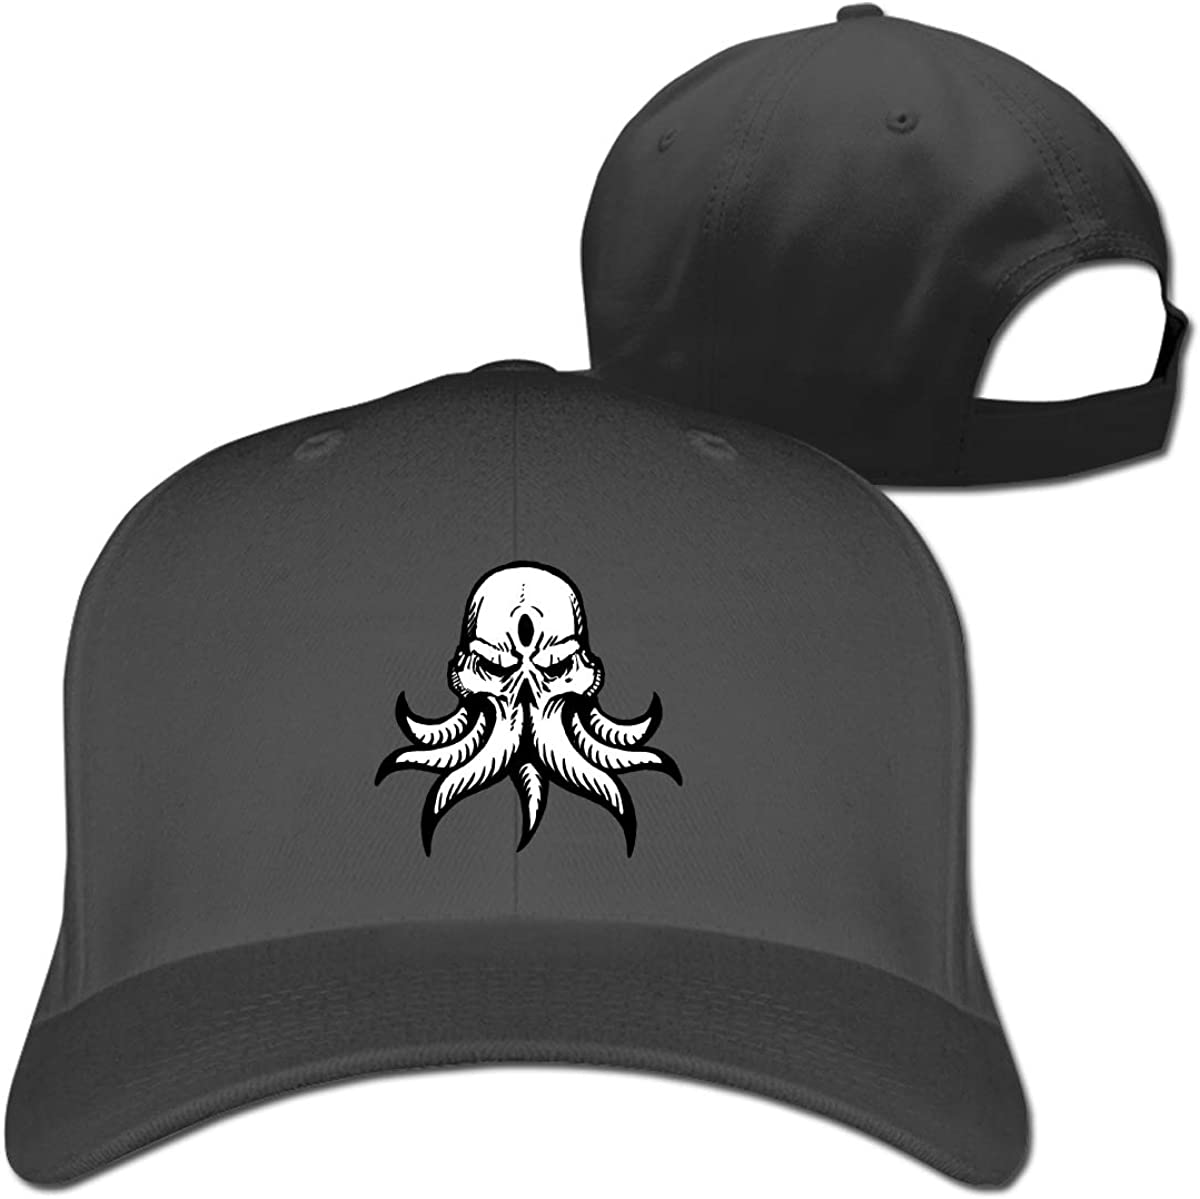 Cool Cthulhu Logo Fashion Adjustable Cotton Baseball Caps Trucker Driver Hat Outdoor Cap Black